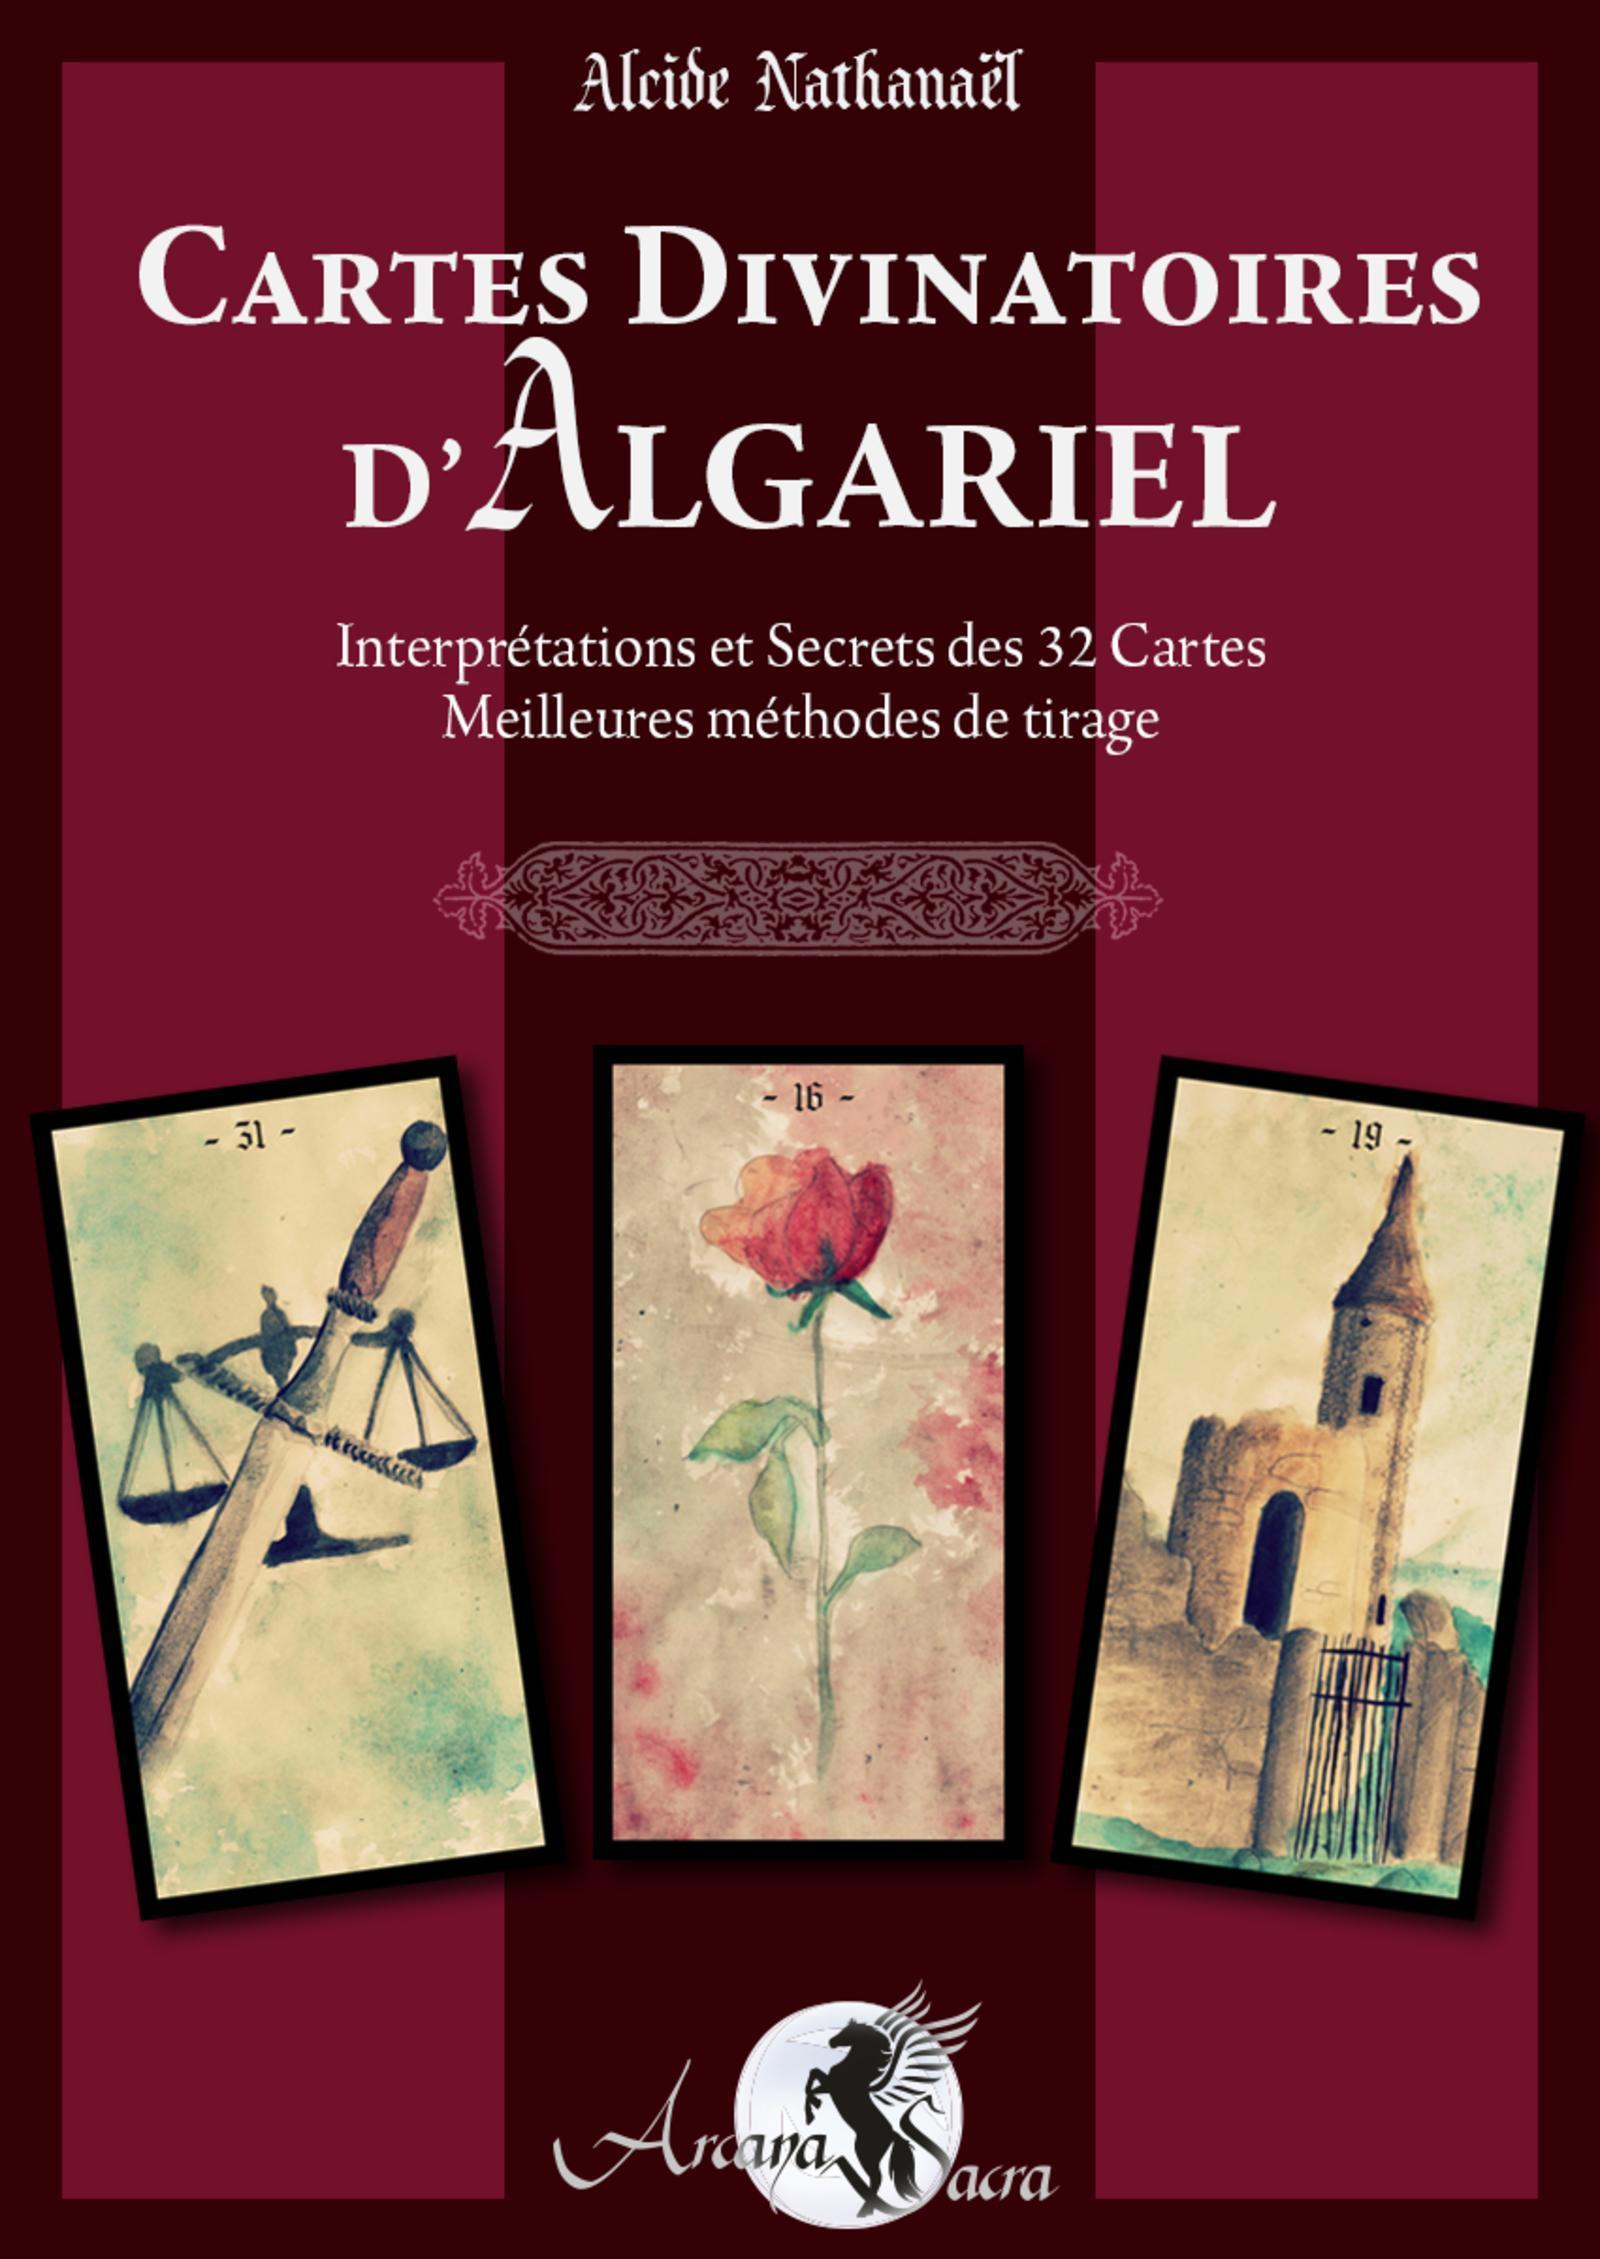 CARTES DIVINATOIRES D ALGARIEL - INTERPRETATIONS ET SECRETS DES 32 CARTES - MEILLEURES METHODES DE T